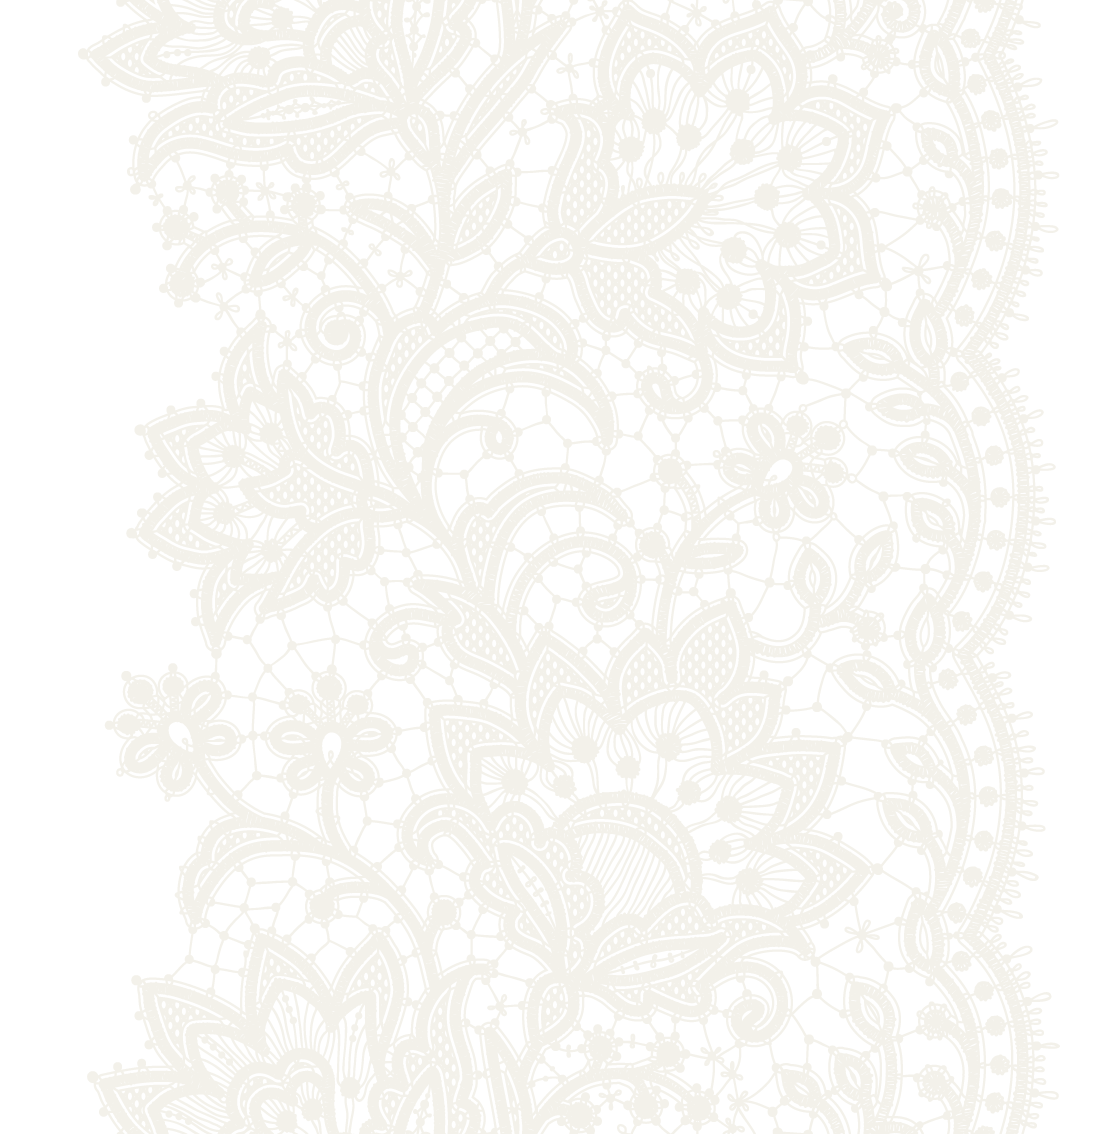 transparent lace fabric patterns background